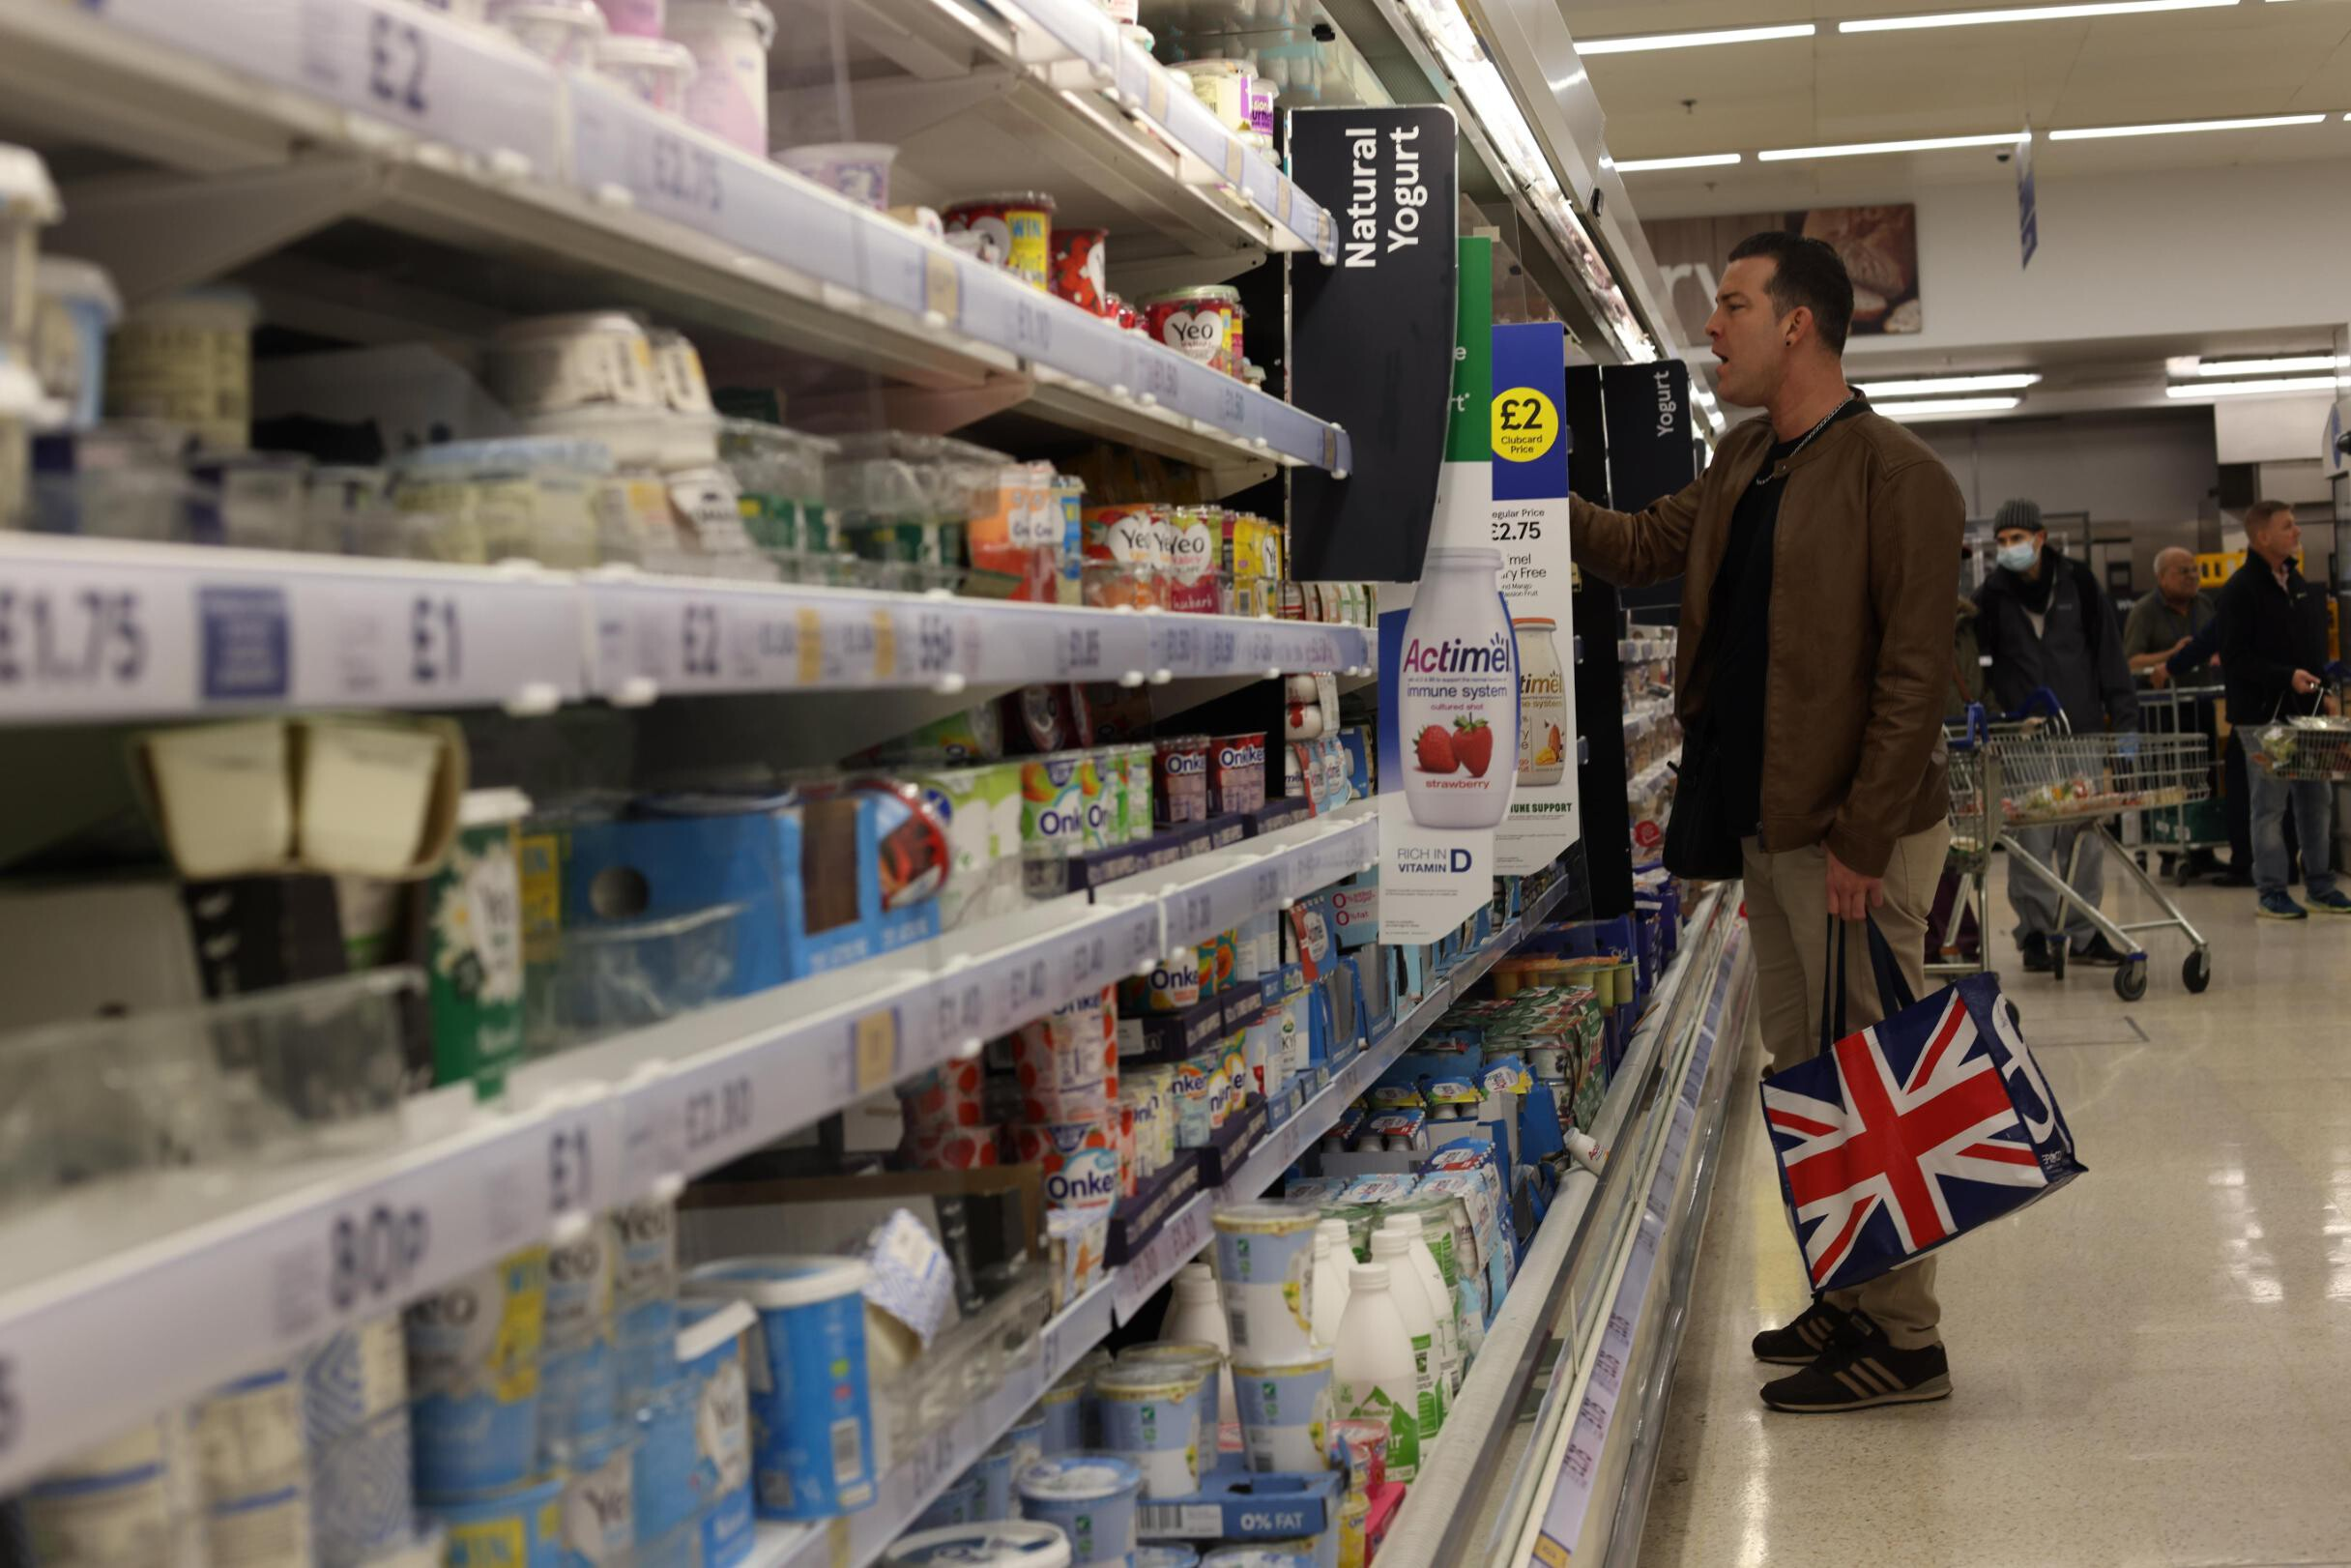 Bank of England official warns inflation could top 5% as UK economy slows